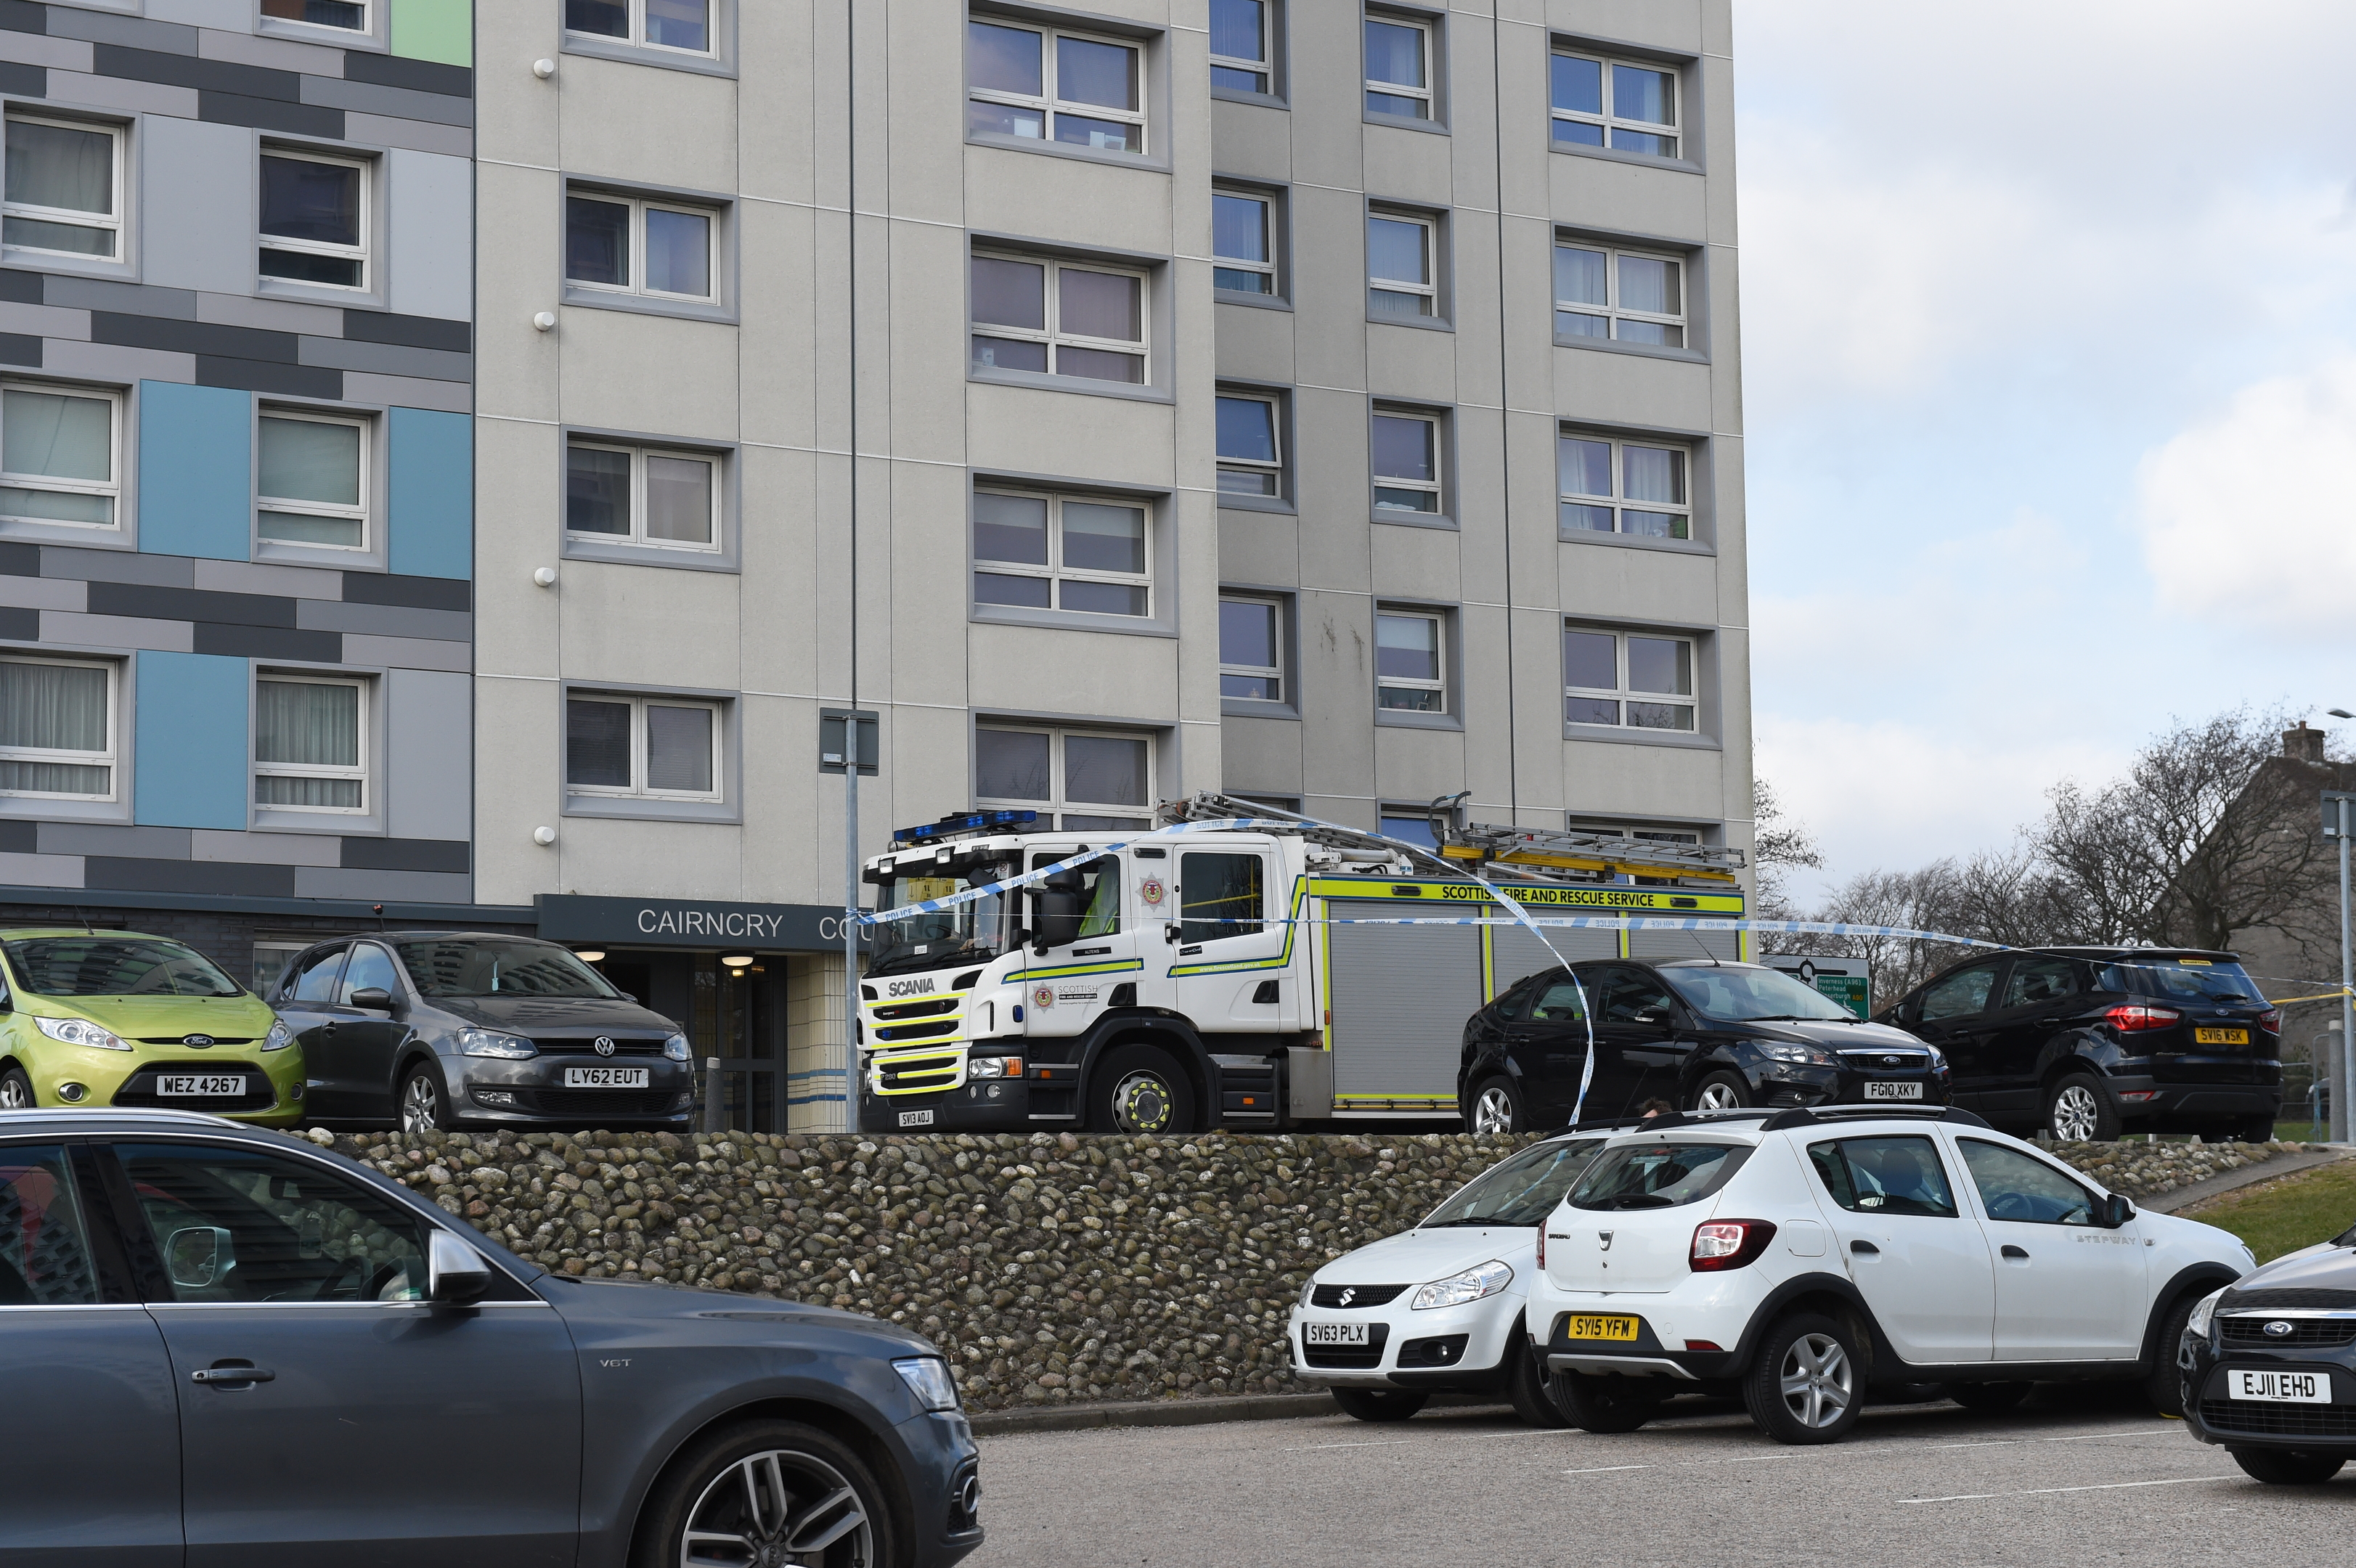 Fire crew at Cairncry Court.